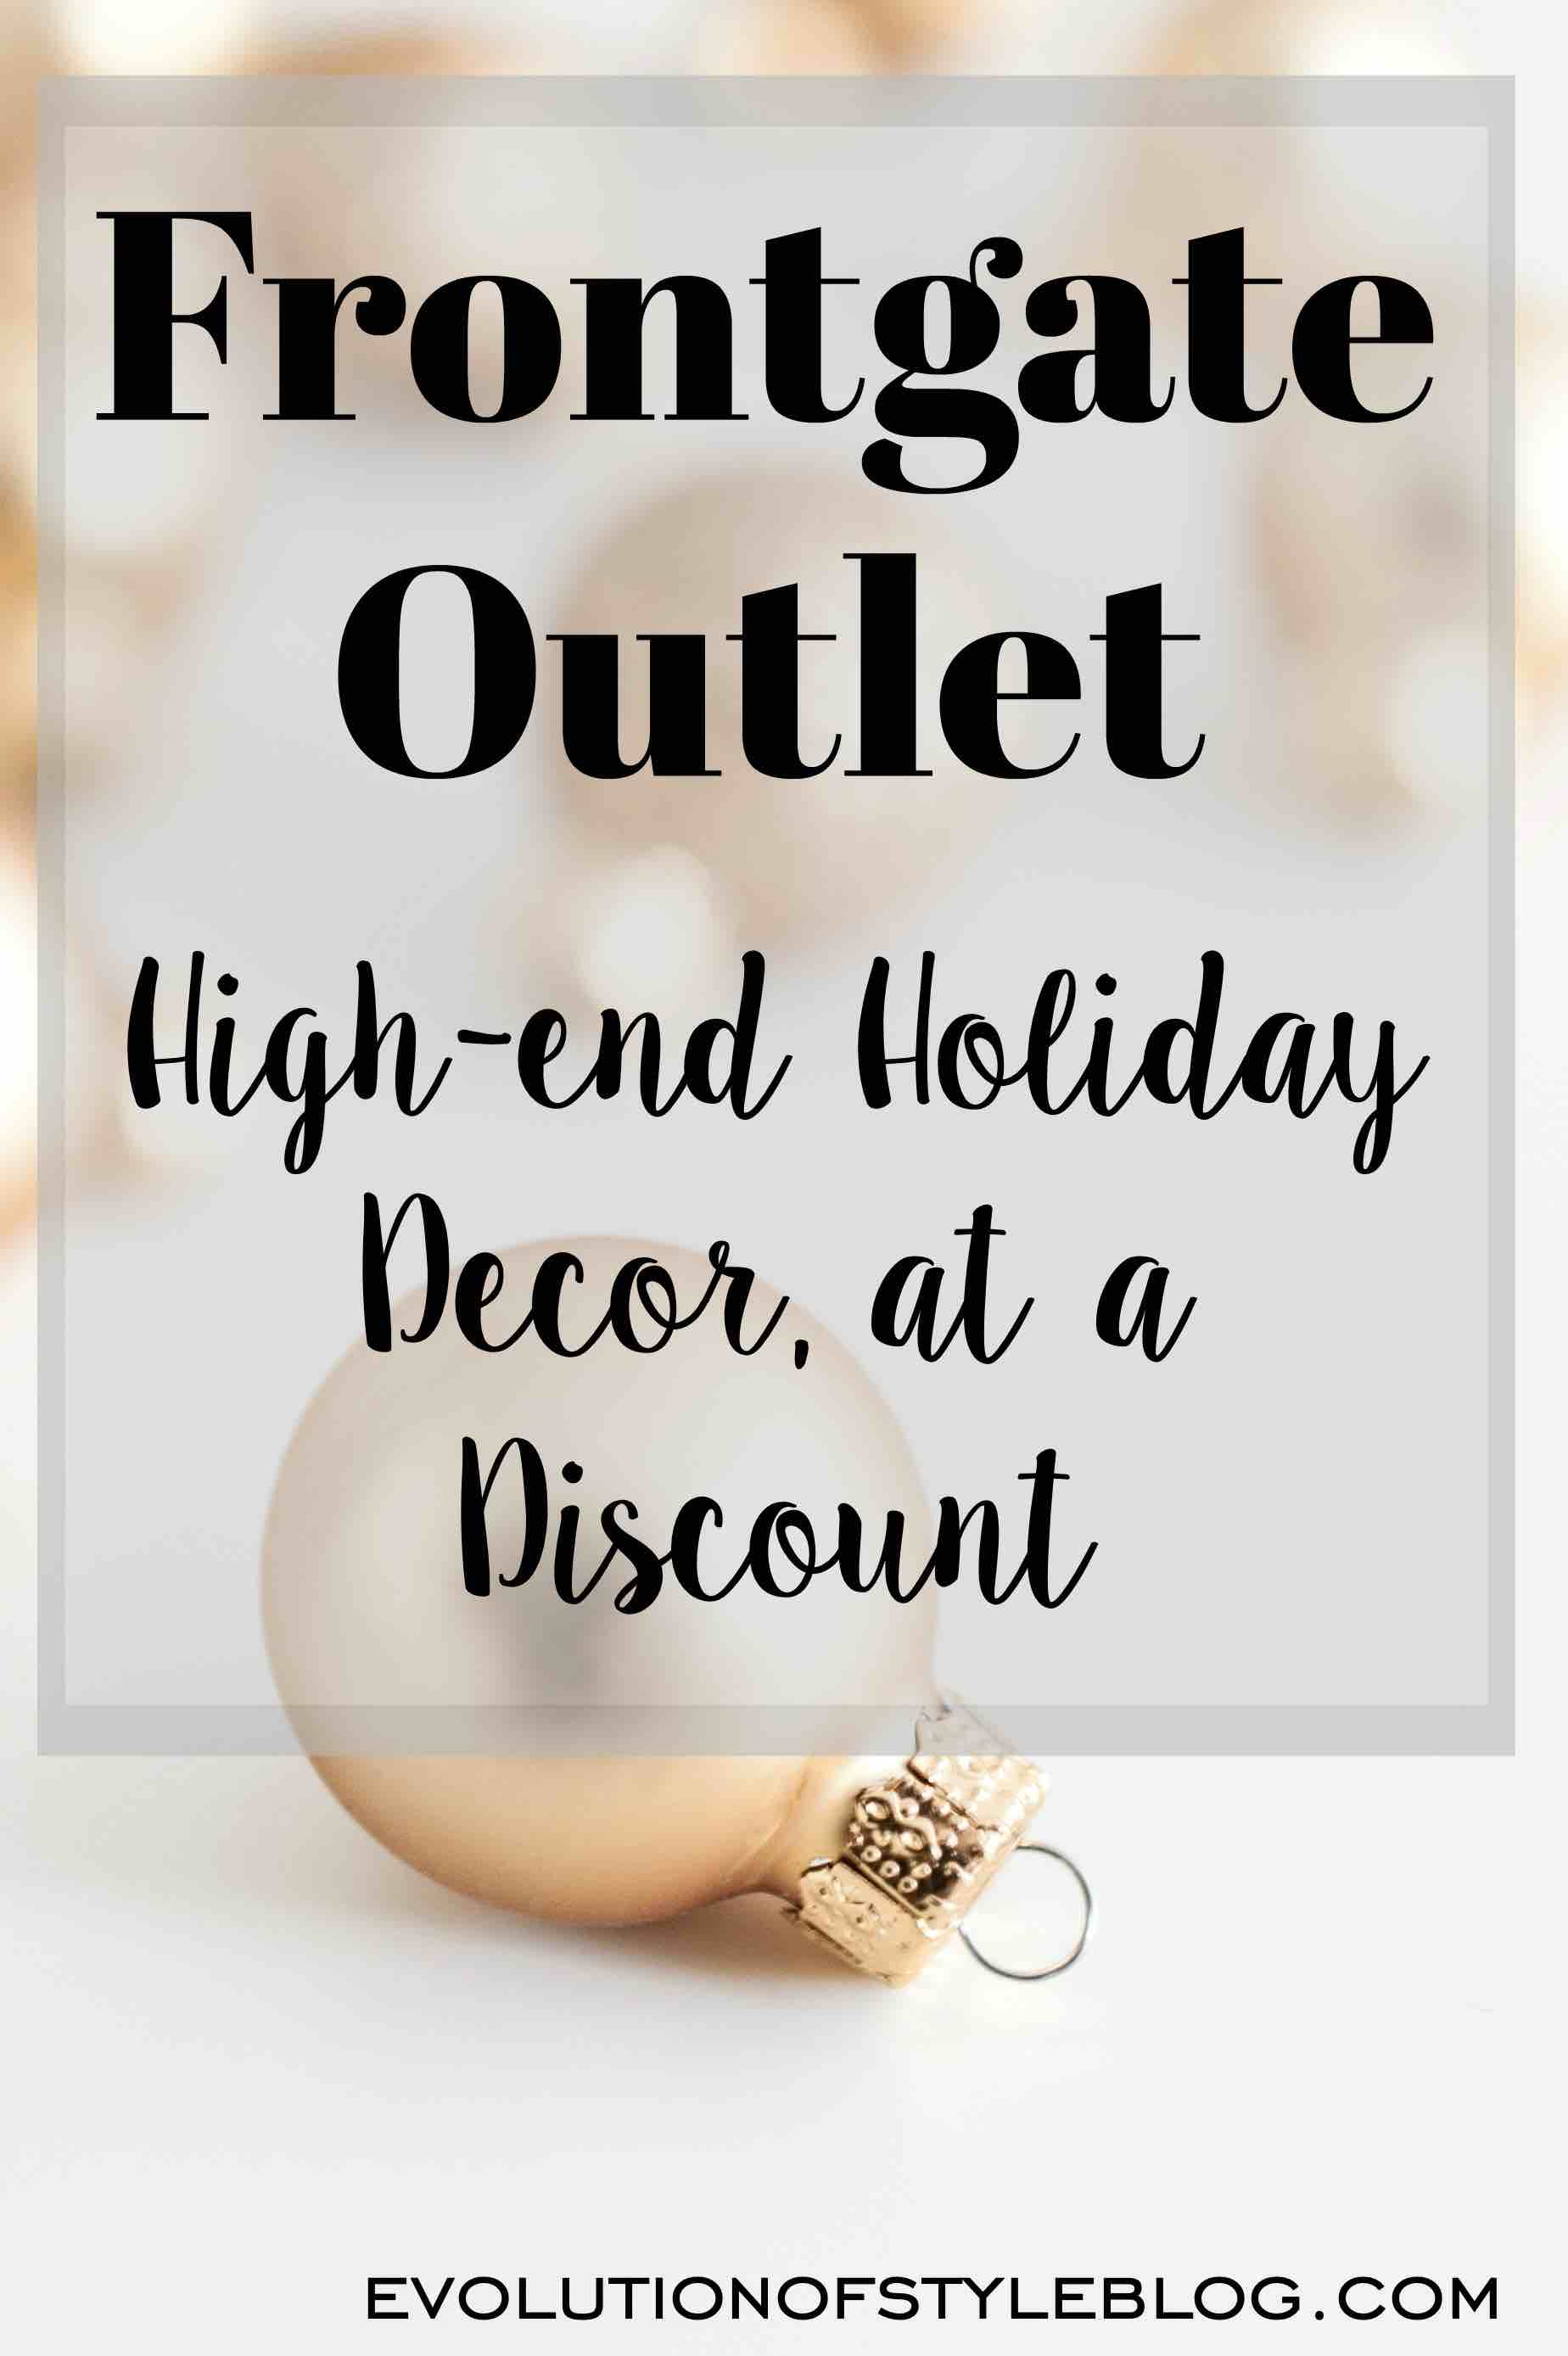 Frontgate outlet discounted high end holiday decor